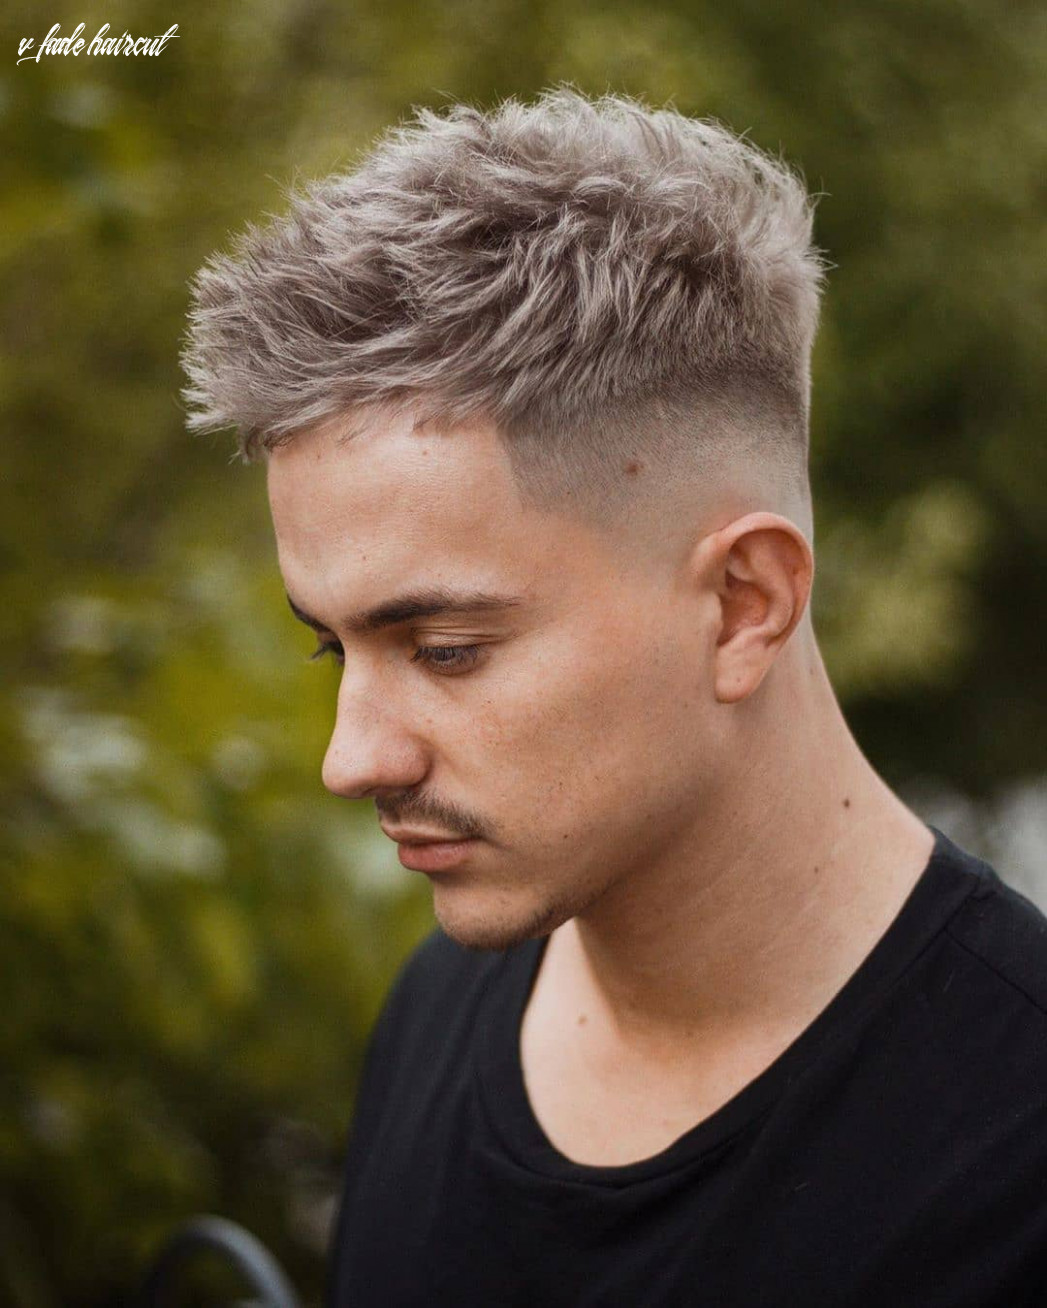 Taper vs. Fade Haircuts for Men: What's the Difference?